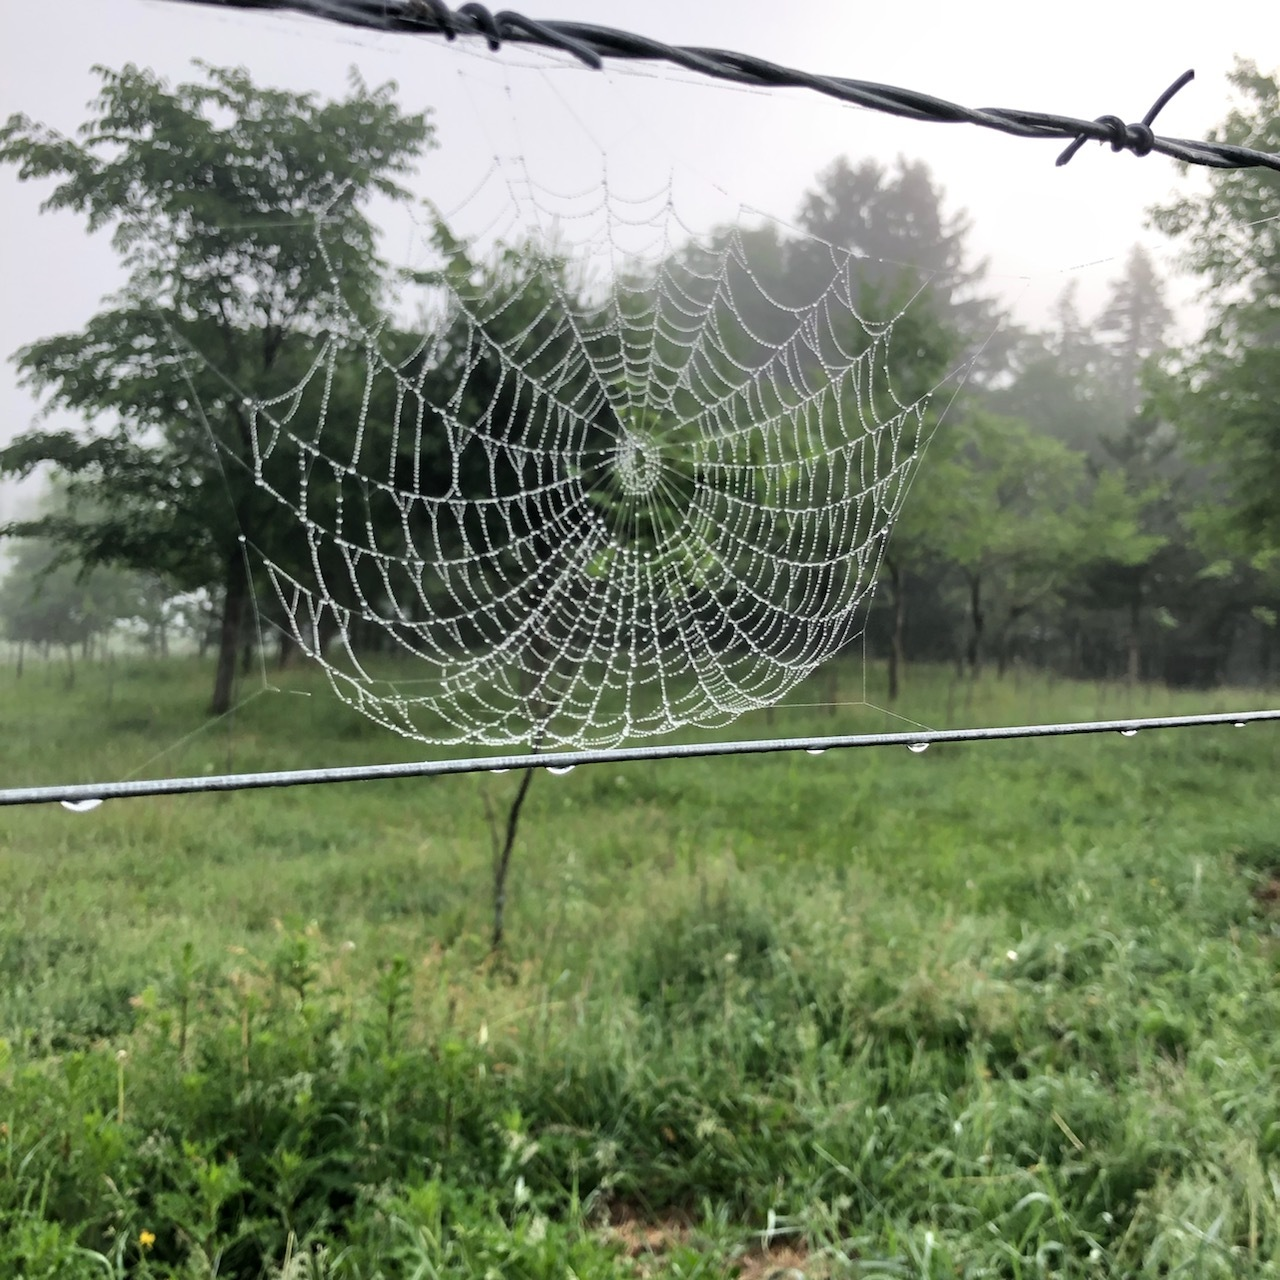 dew on the webs